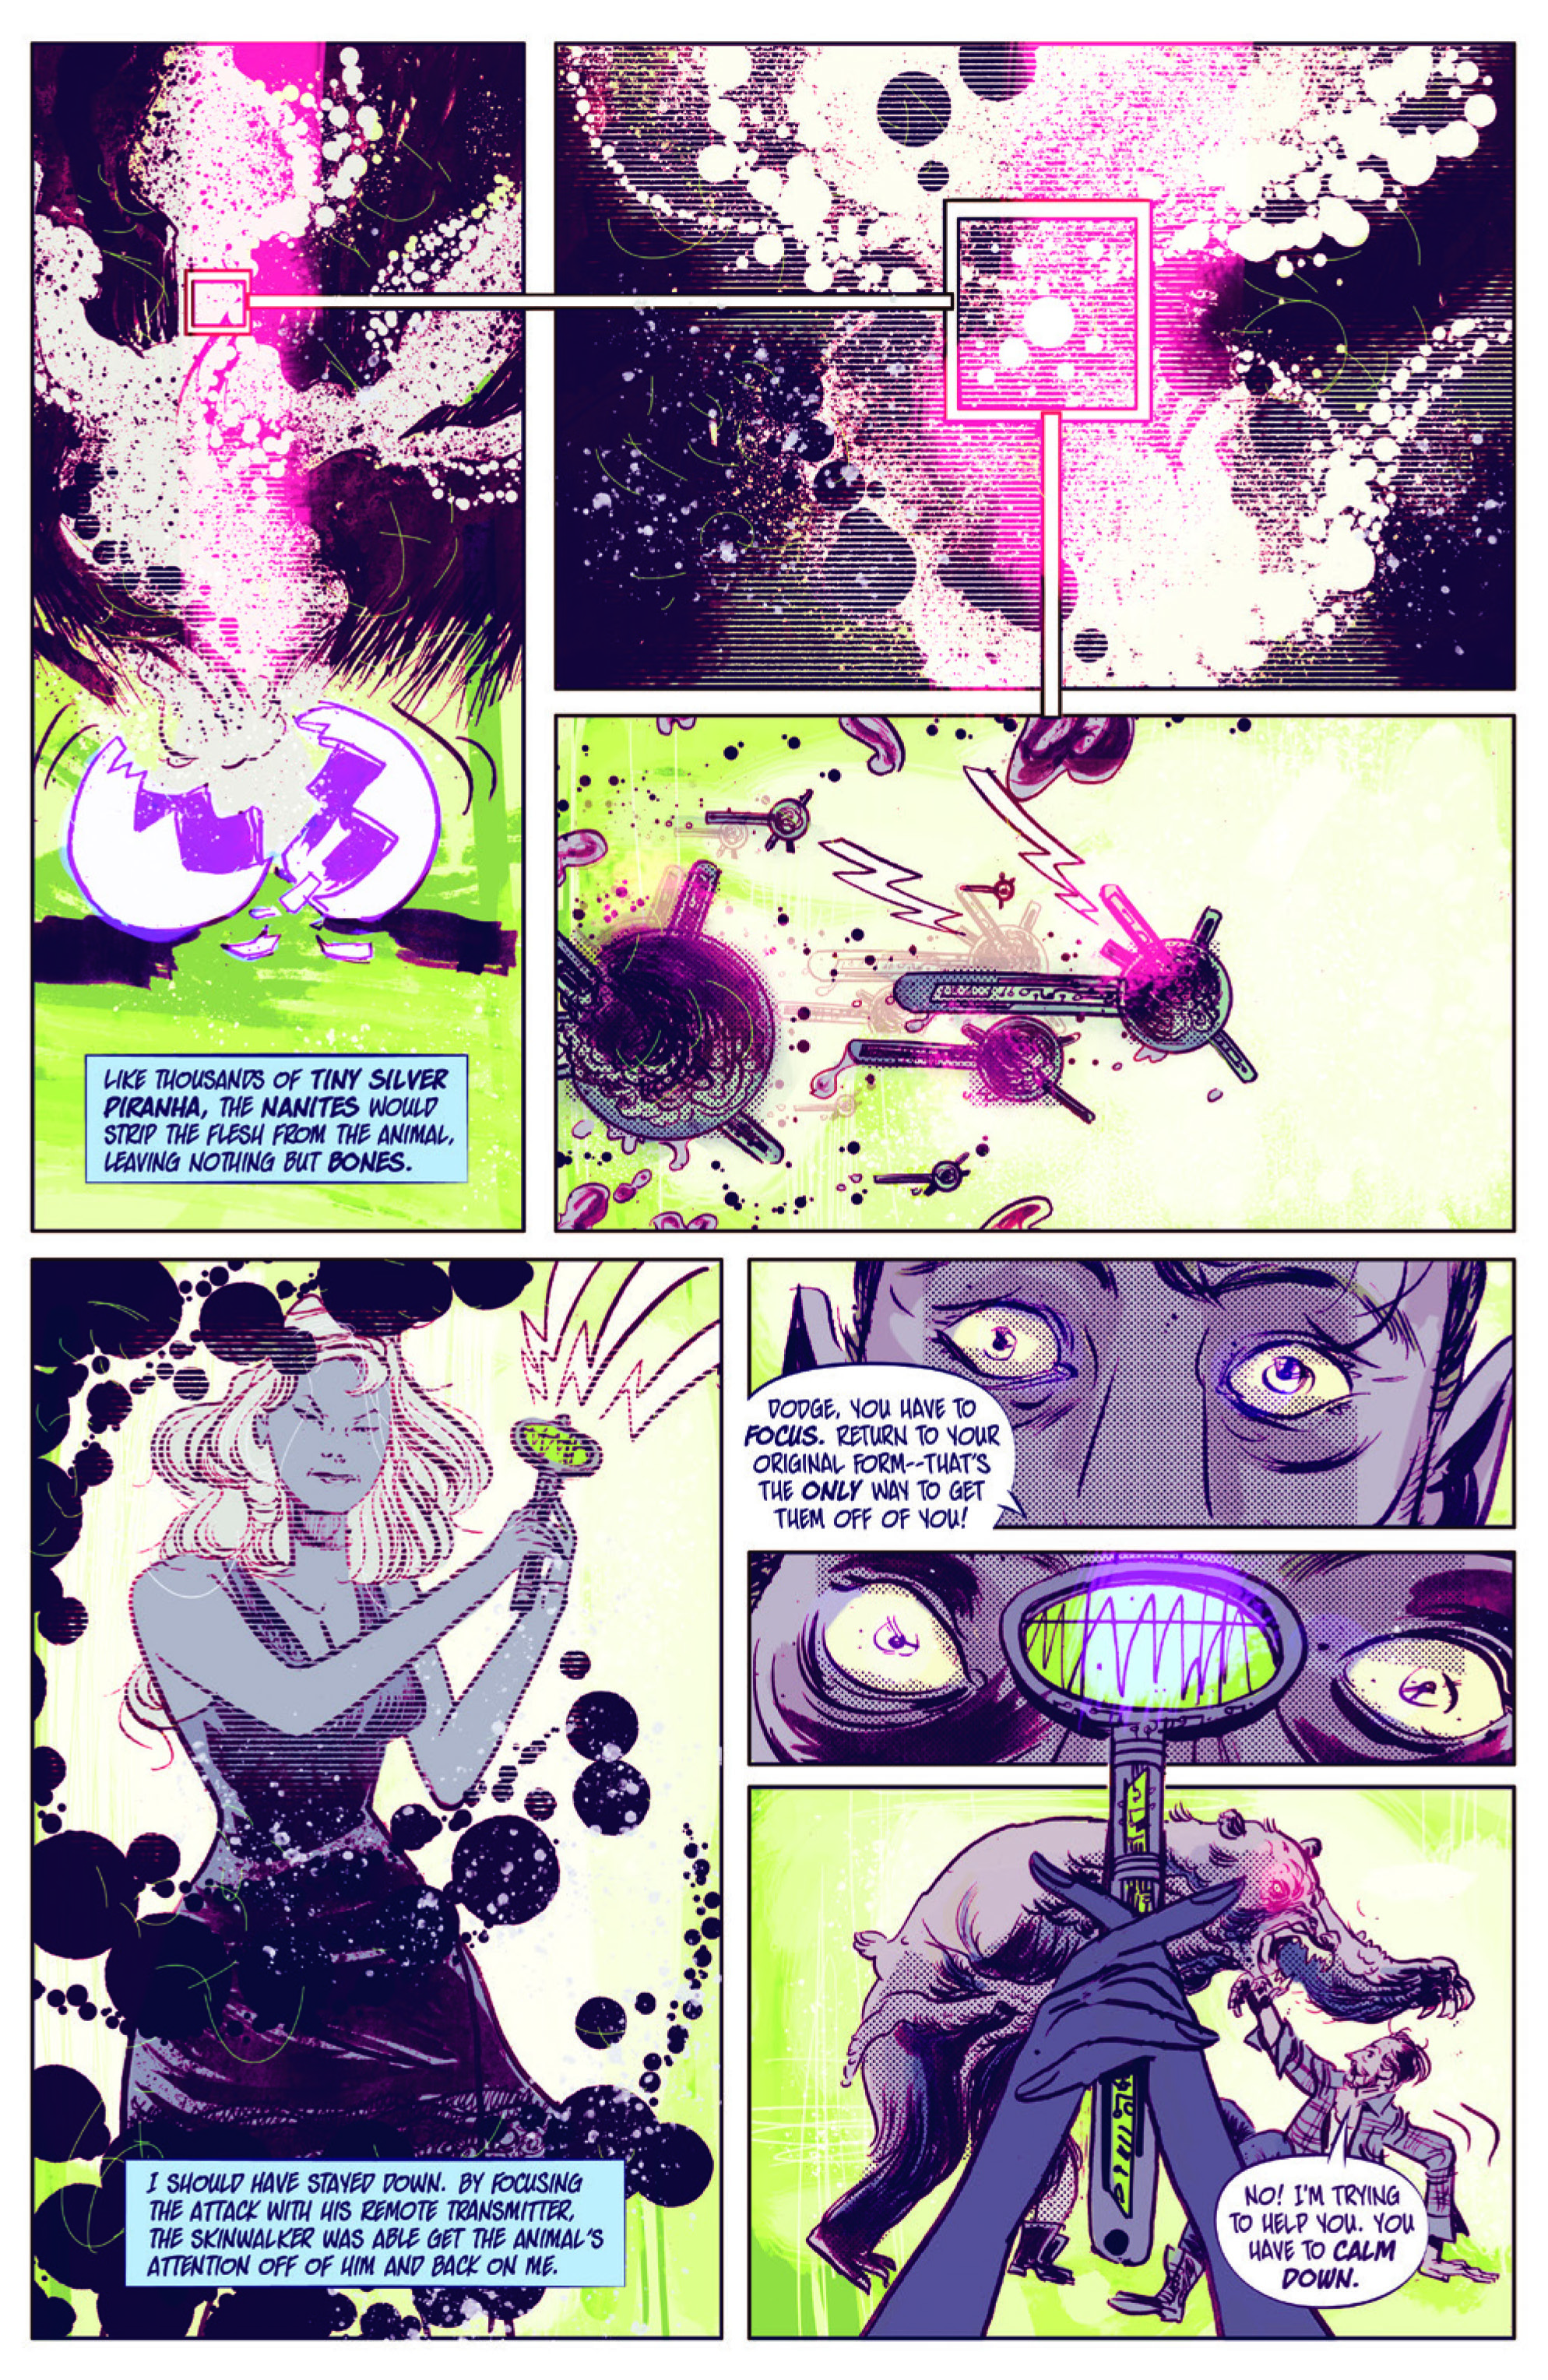 retcon01_Review_(1)_Page_11